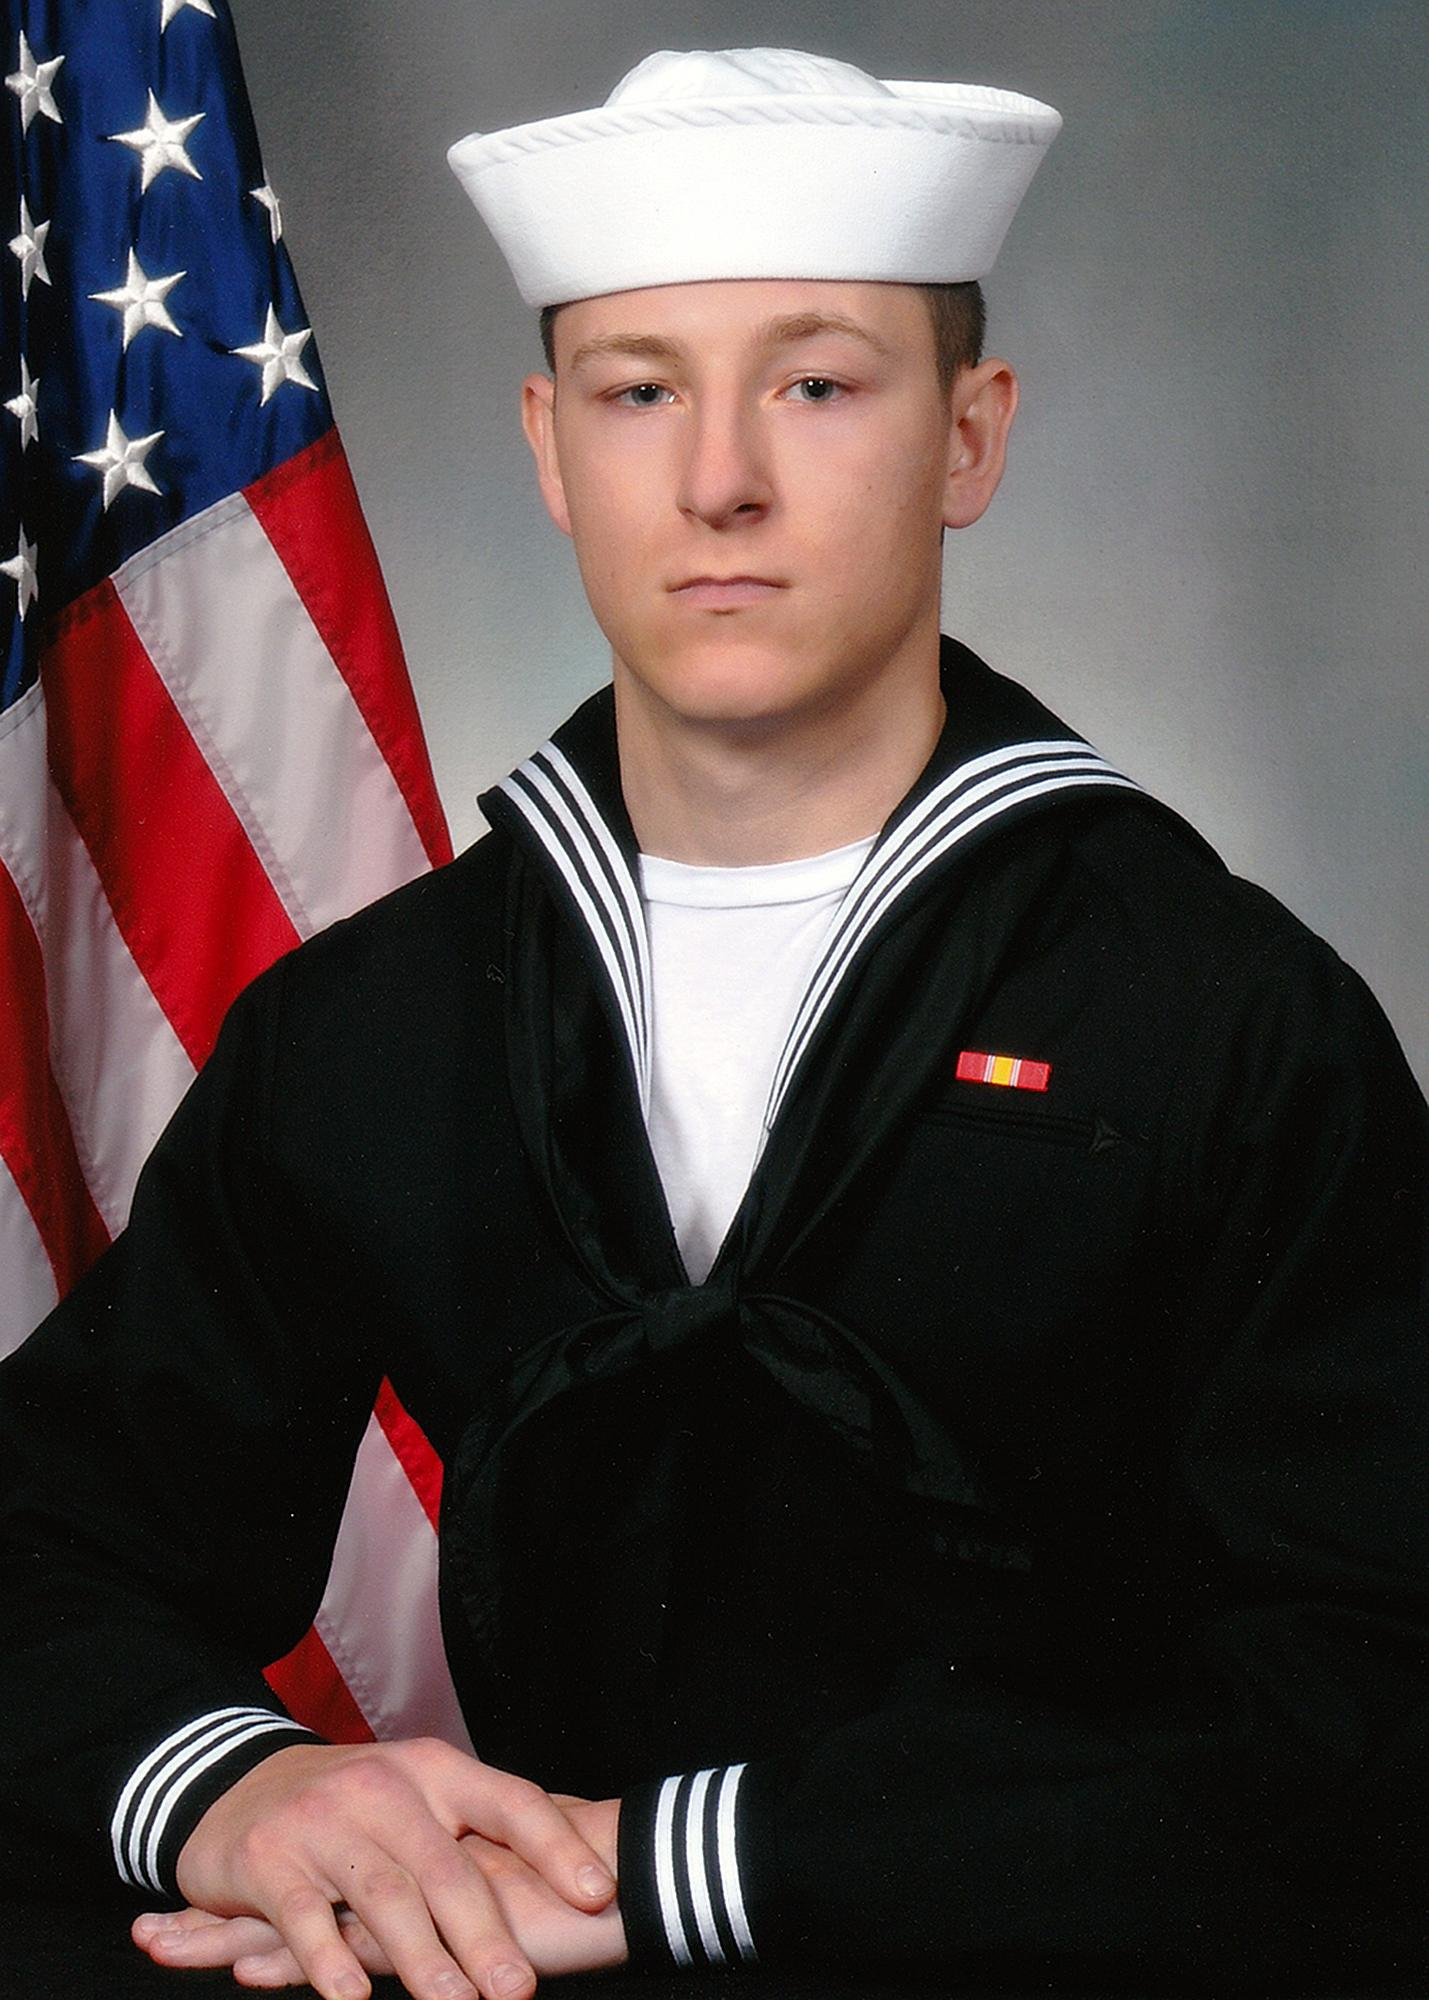 In this undated photo released by the U.S. Navy shows Electronics Technician 3rd Class Kenneth Aaron Smith from Cherry Hill, N.J. Smith, 22, was stationed aboard USS John S. McCain when it collided with an oil tanker near Singapore on Monday, Aug. 21, 2017.  His body was recovered on Aug. 24.  (U.S. Navy via AP)